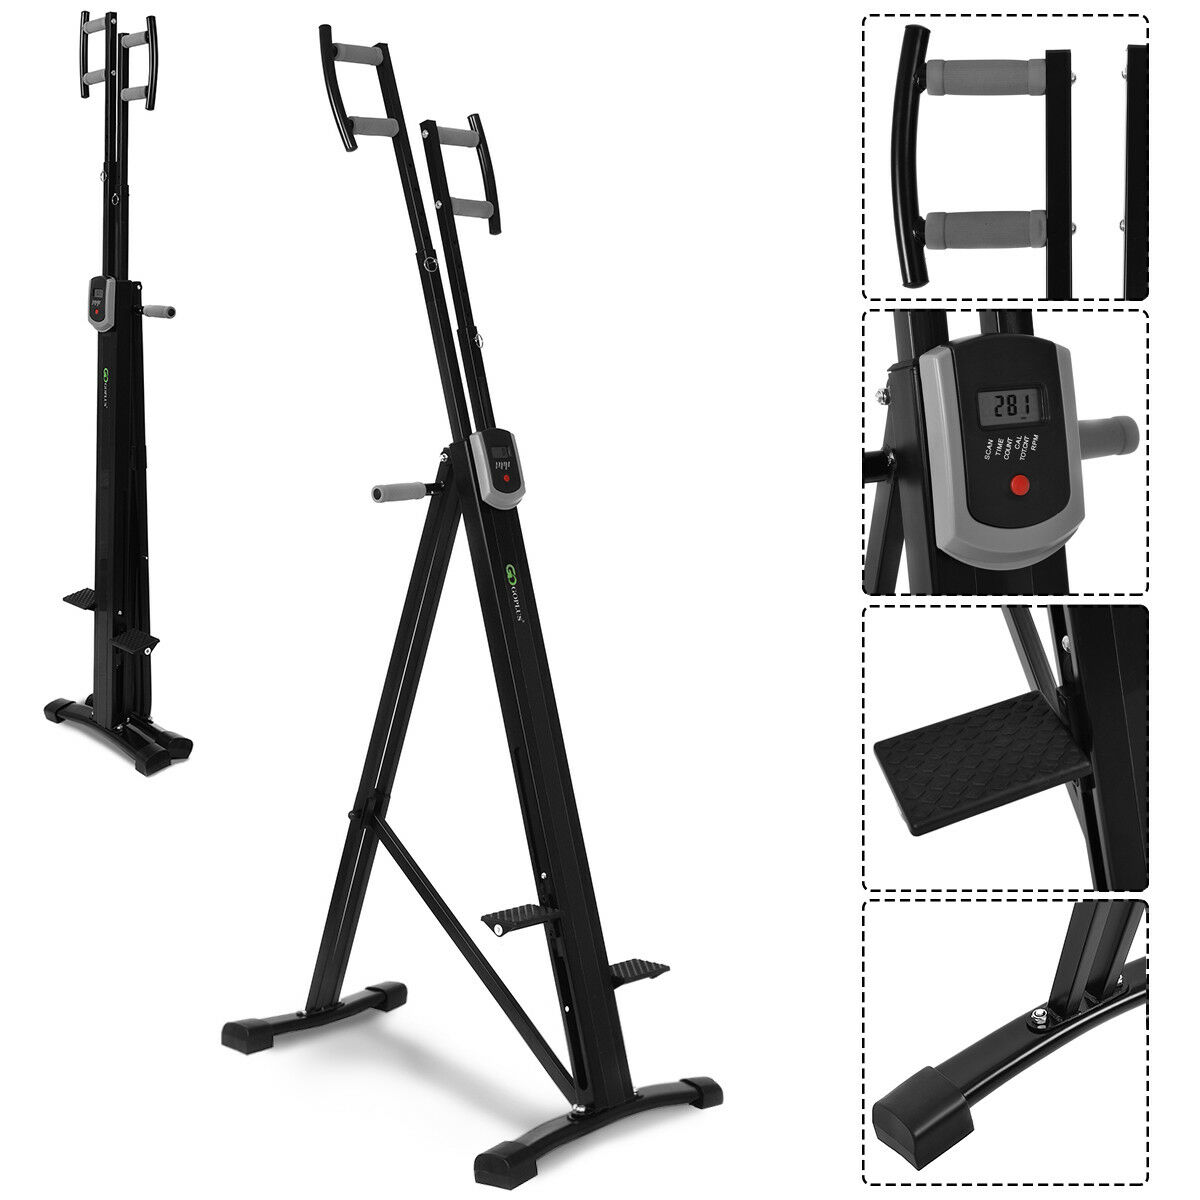 Costway Foldable Vertical Climber Machine Exercise Stepper Cardio Workout Fitness Gym